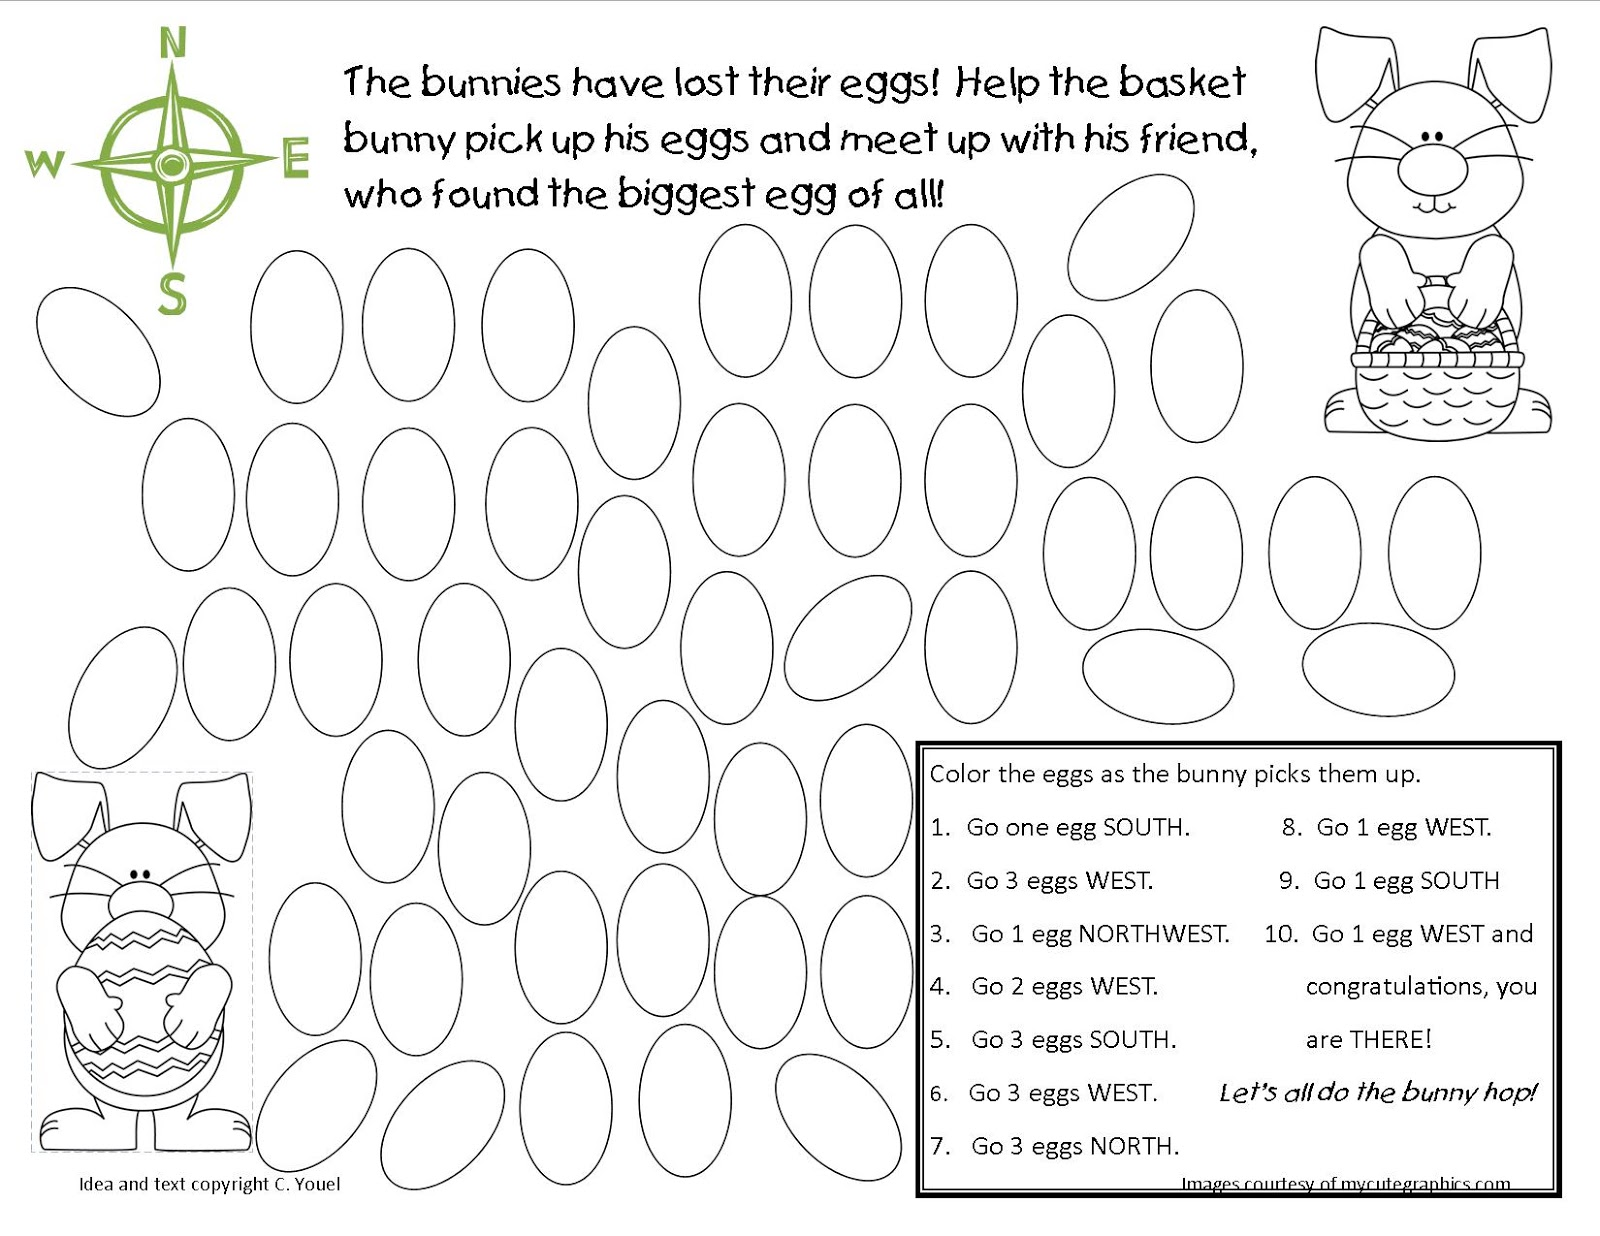 worksheet Following Directions Worksheet Preschool following directions worksheets kindergarten free library wh t does fox re d m rch 2013